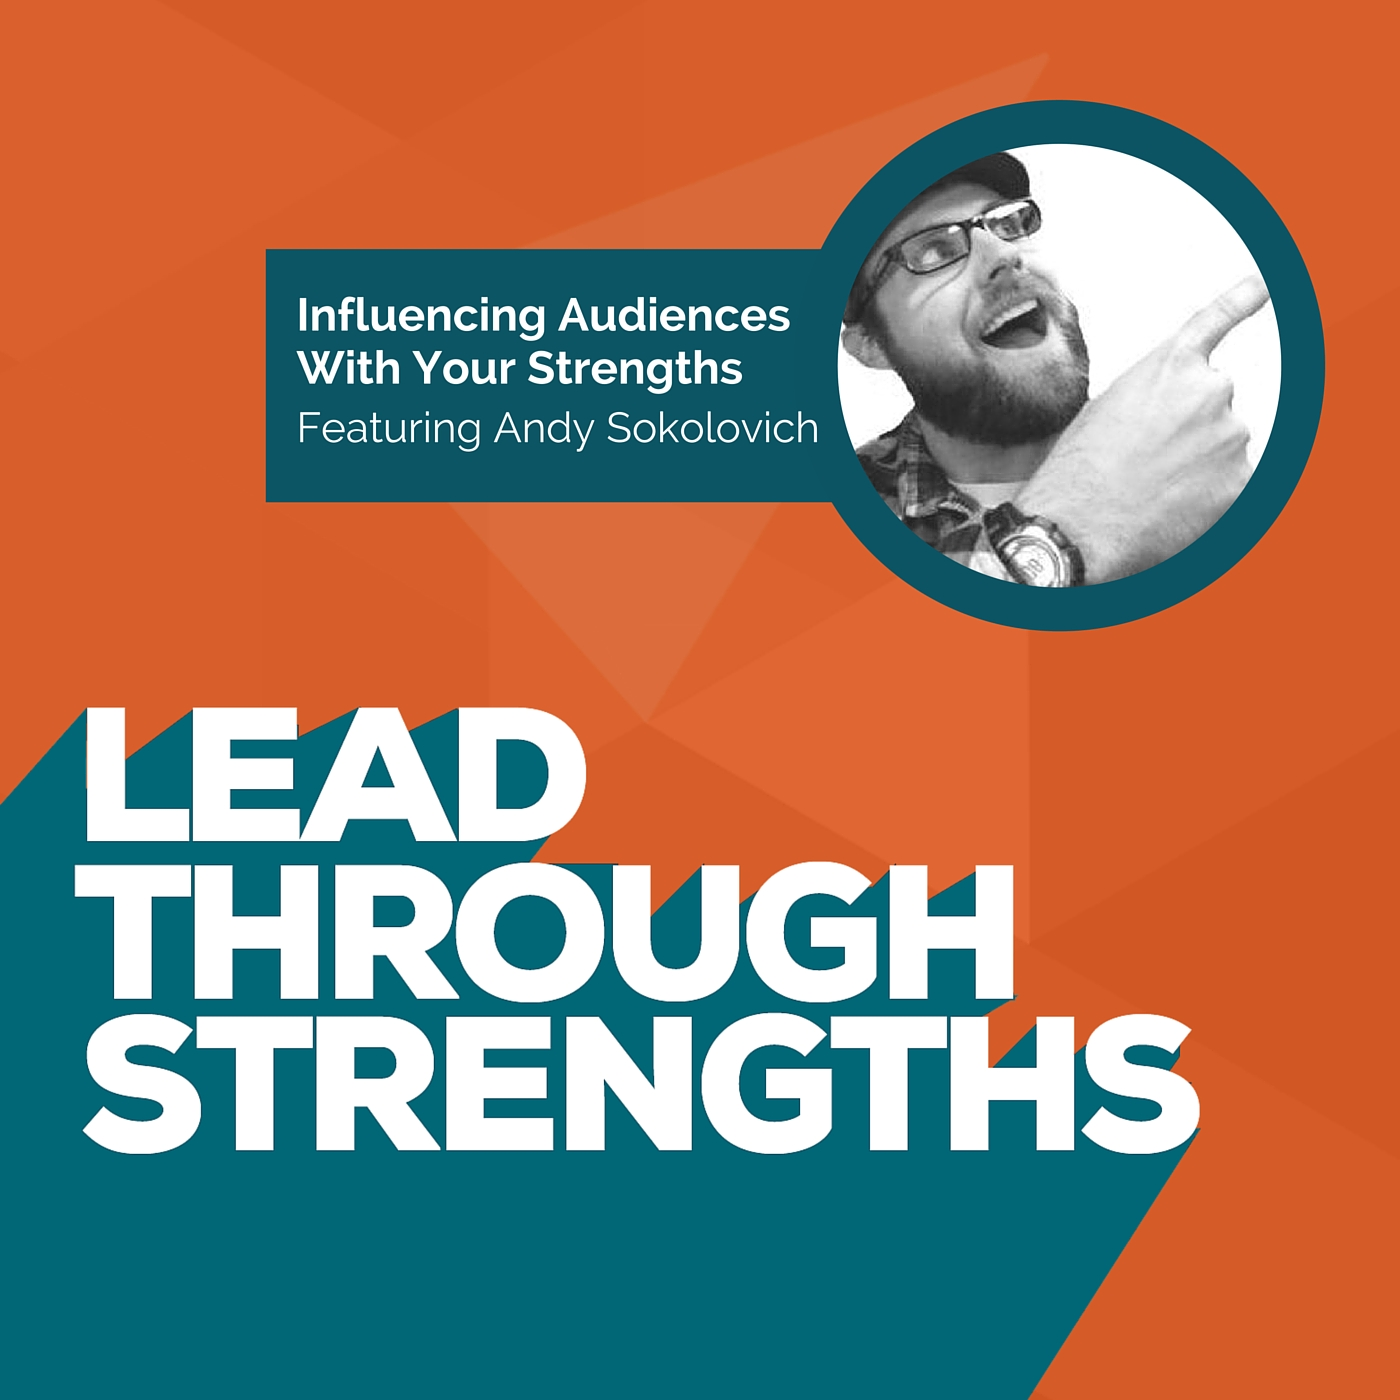 Influencing Audiences Through Your Strengths - With Andy Sokolovich